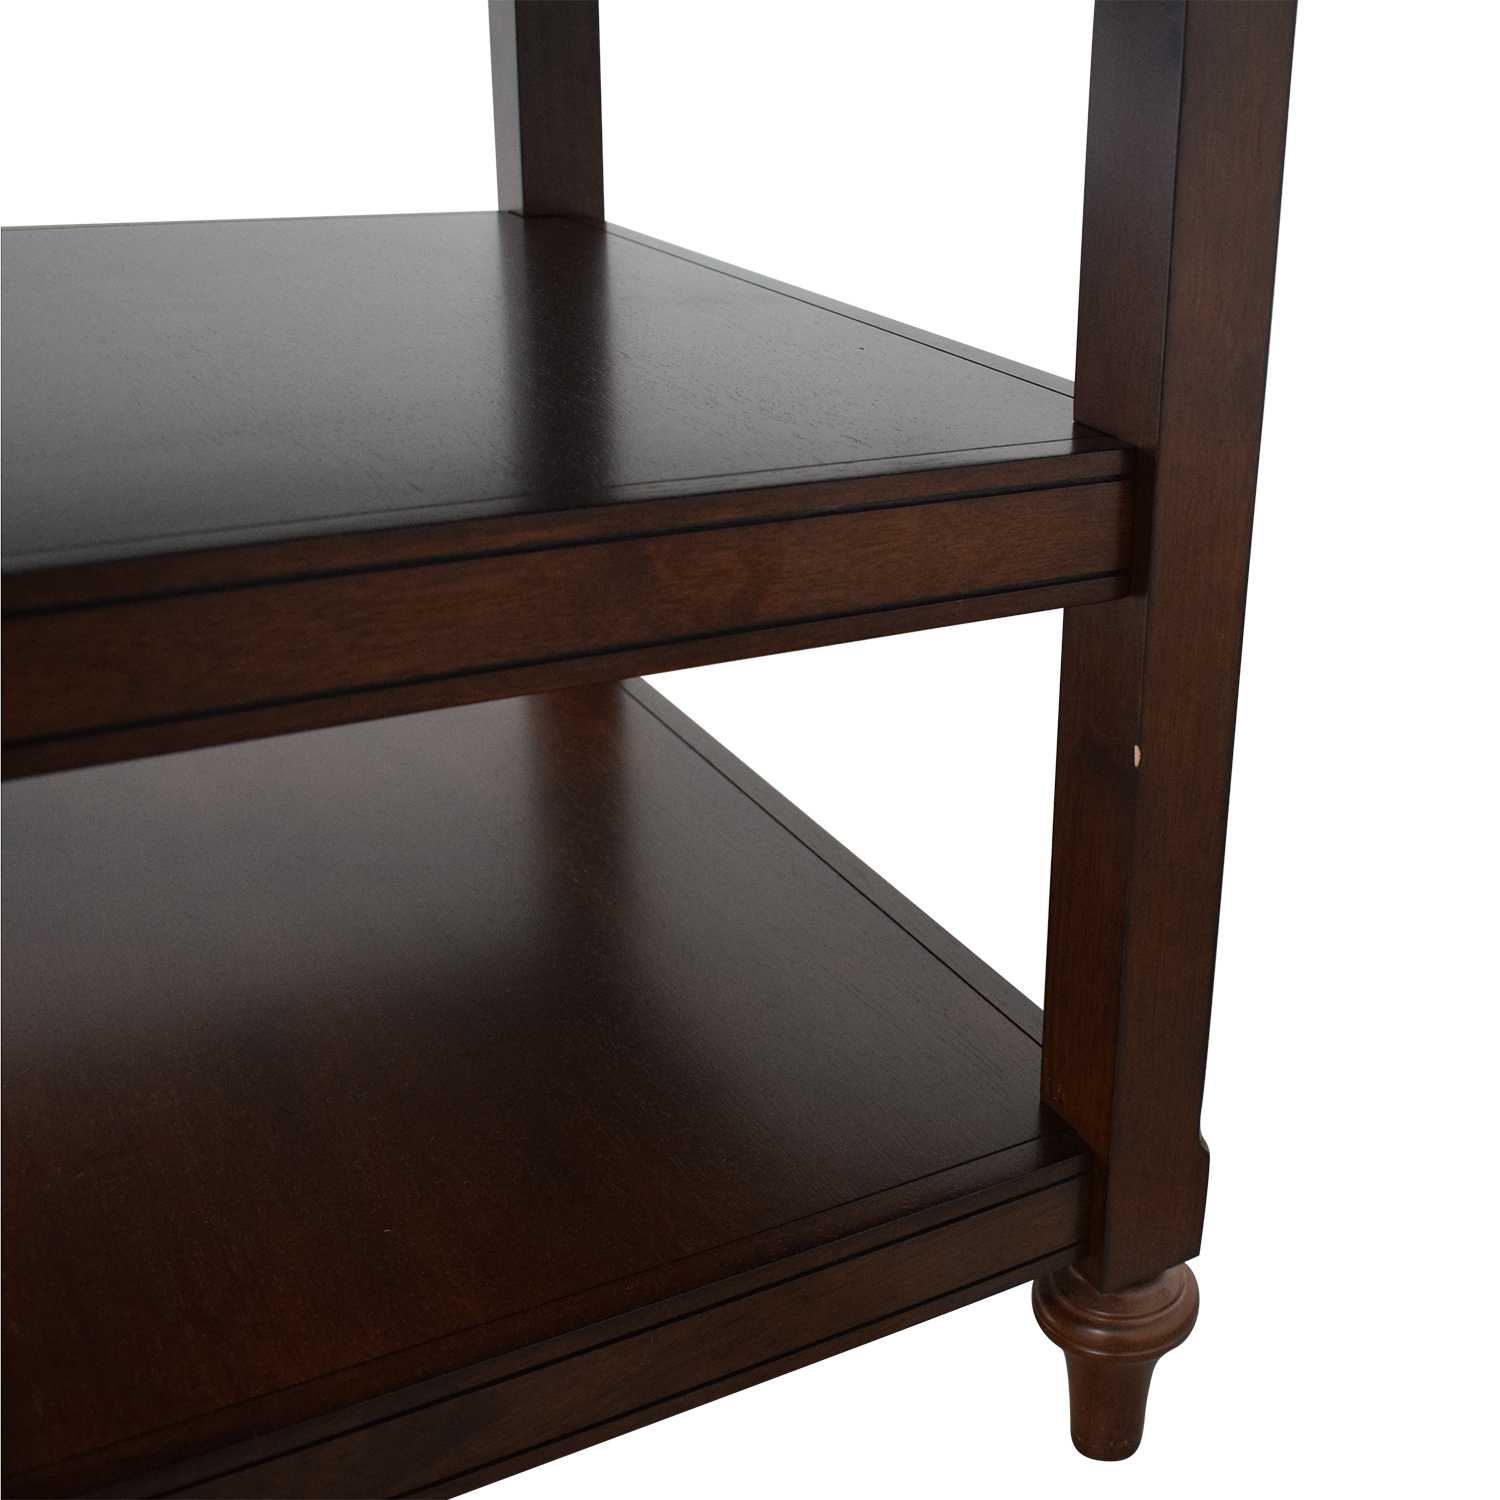 Pottery Barn Pottery Barn Drop Leaf Kitchen Table on sale